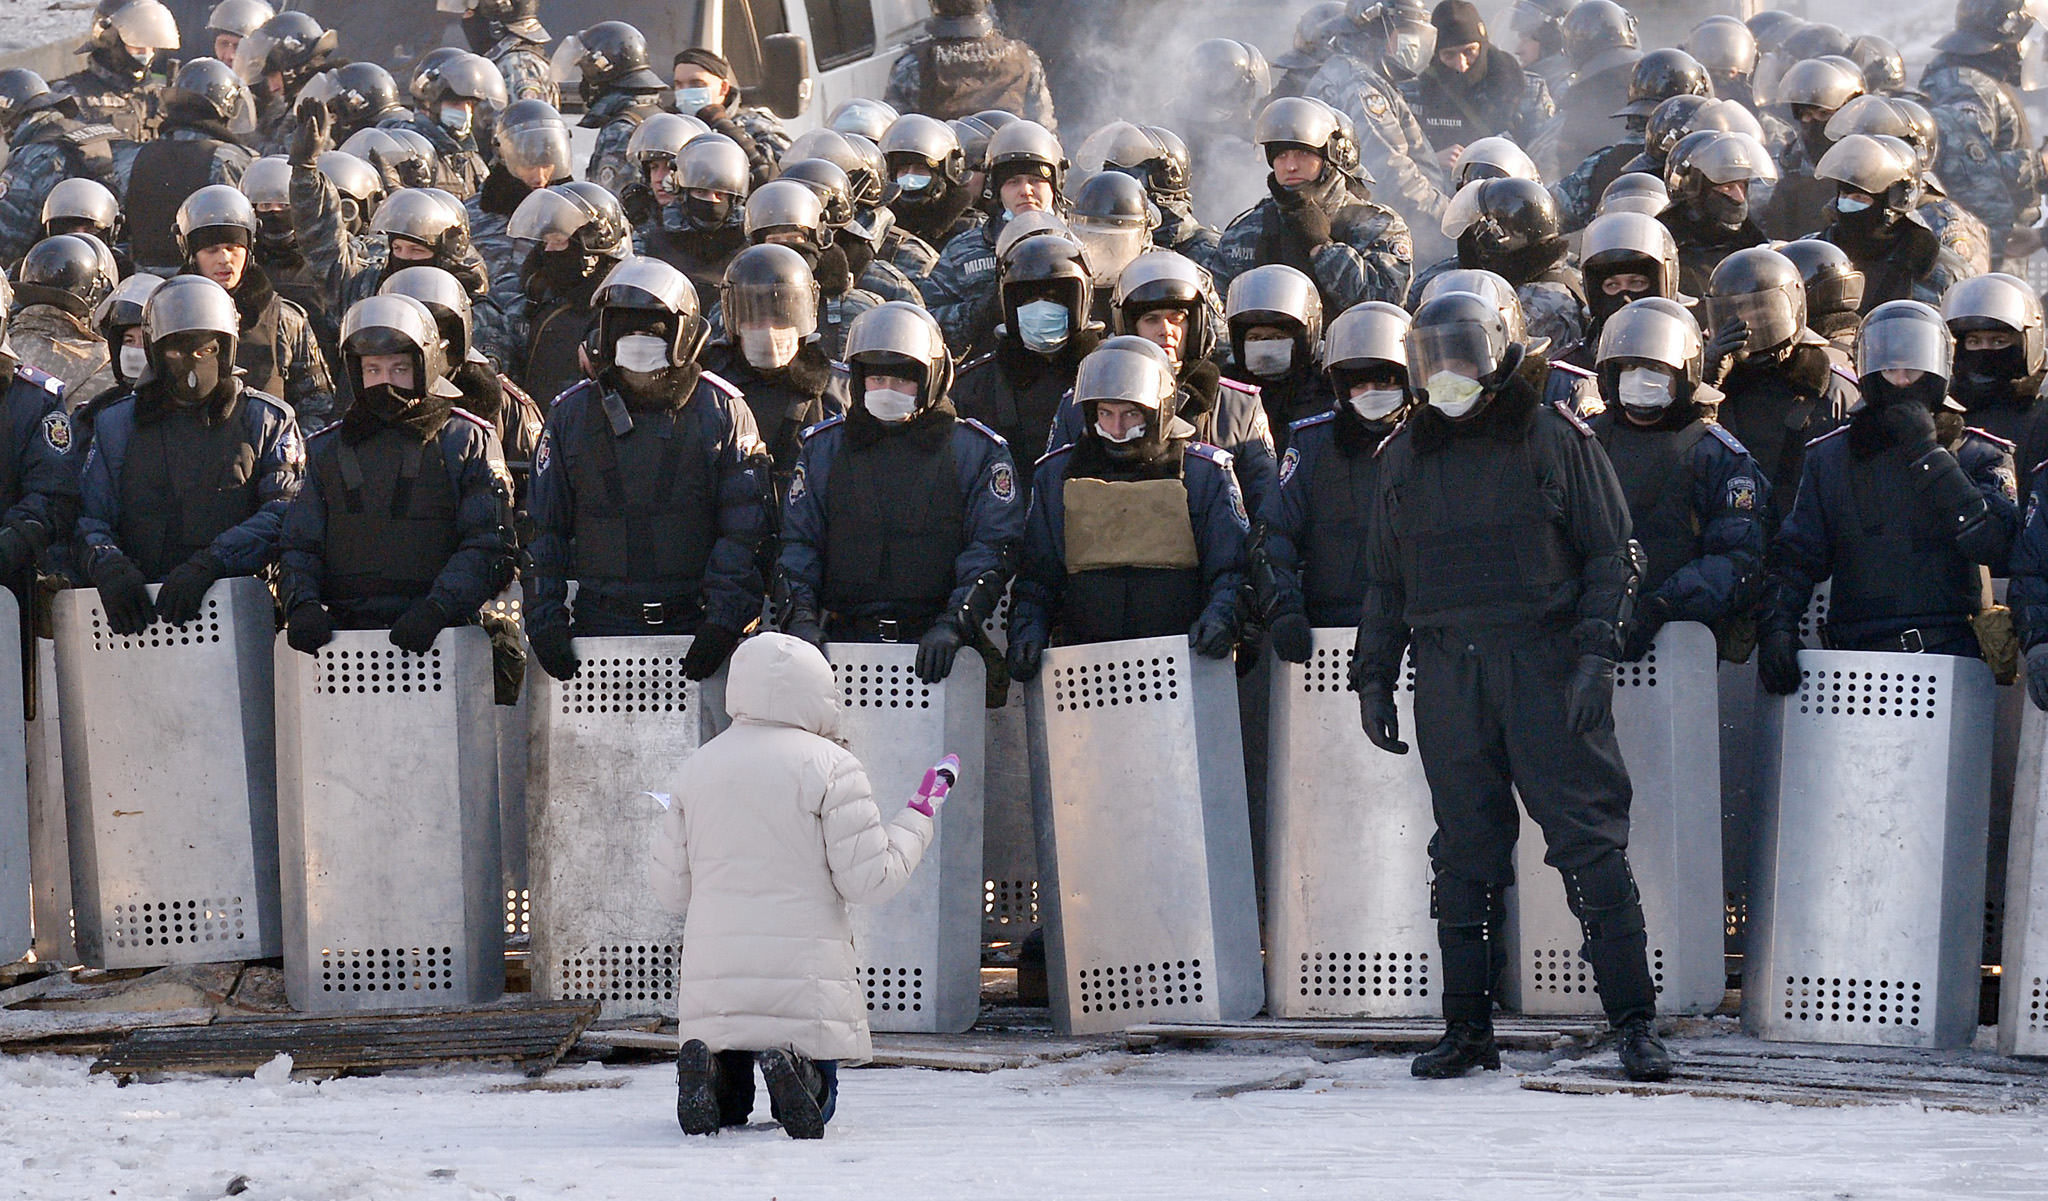 A woman speaks as she kneels down in fro...A woman speaks as she kneels down in front of a line of riot police in the center of Kiev on January 24, 2014. Ukrainian protesters today expanded their protest camp in Kiev closer to the administration of President Viktor Yanukovych, after crisis talks to end Ukraine's worst crisis since its 1991 independence ended in deadlock. After five days of clashes that activists say left five dead, Ukraine's three main opposition leaders held several hours of talks with Yanukovych late on January 23 but the minor concessions they announced were greeted with derision by protesters. AFP PHOTO / SERGEI SUPINSKYSERGEI SUPINSKY/AFP/Getty Images